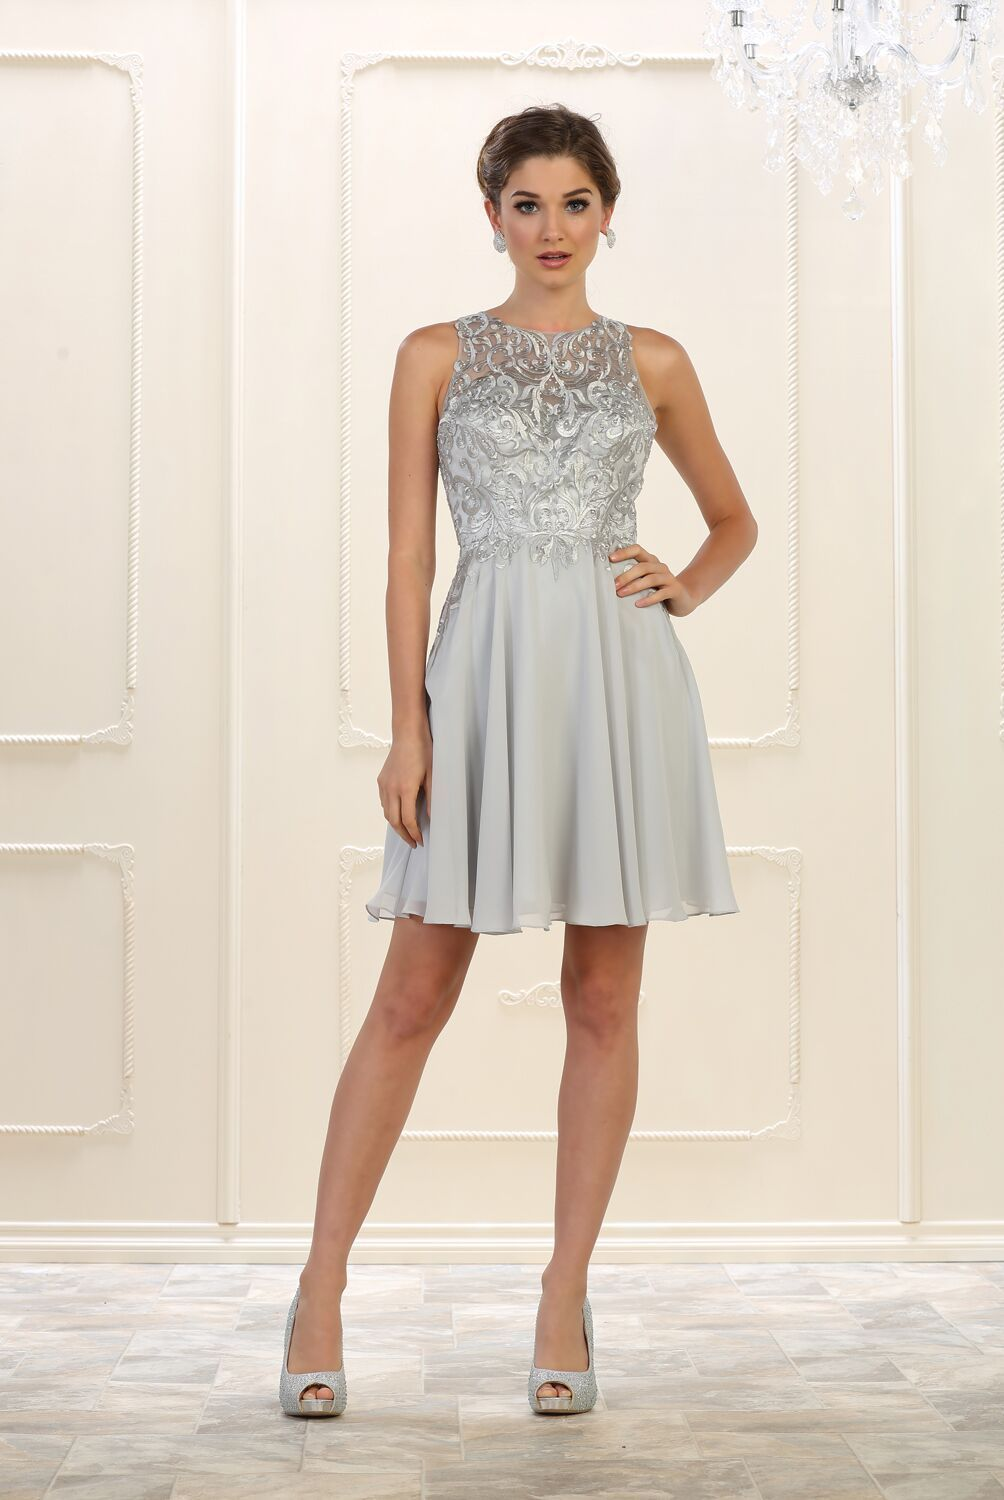 87bc14fd47dc This stunning sassy short dress comes with sleeveless. Embellish  embroideries rhinestones over mesh material at the top and chiffon skirt  material.